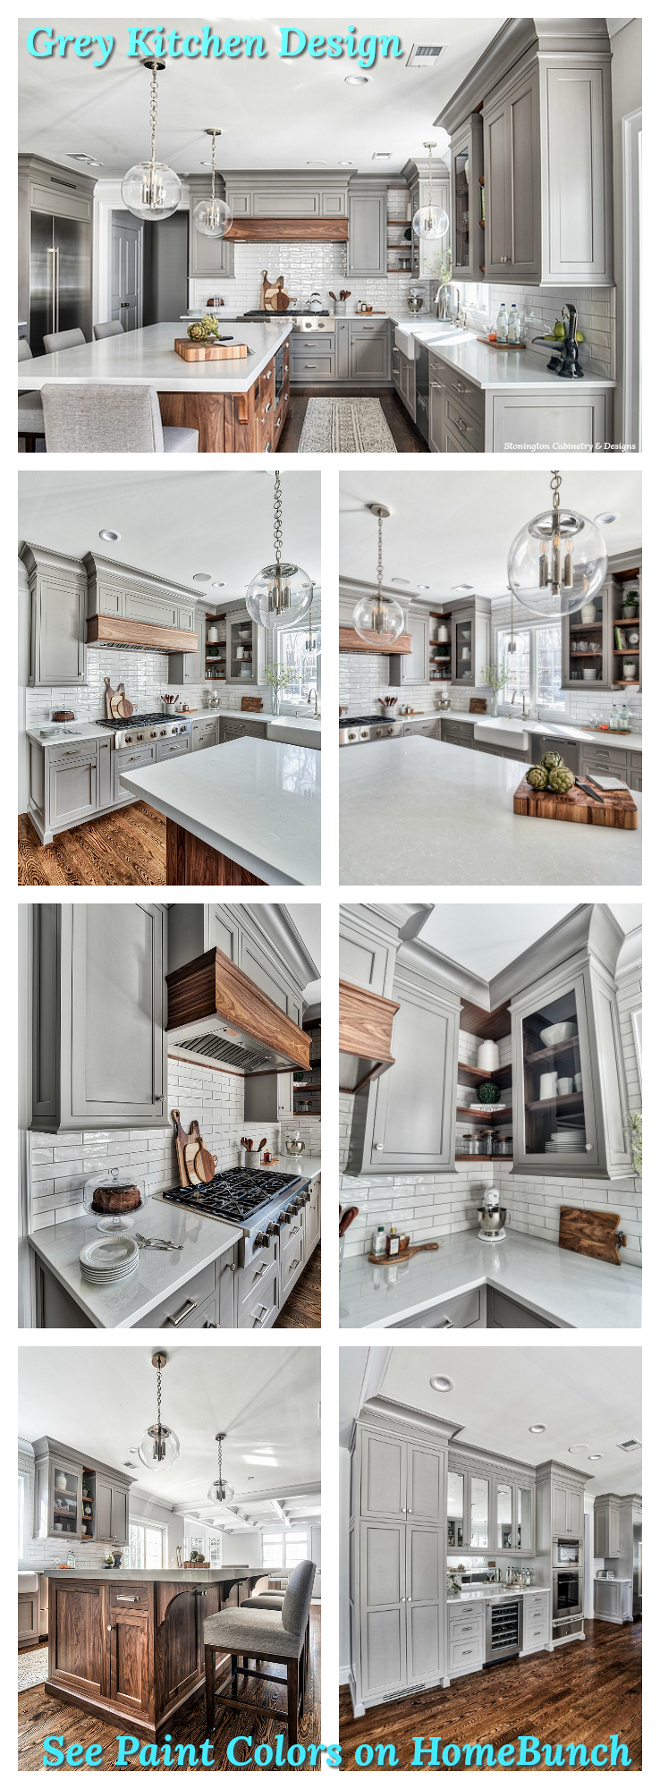 Grey Kitchen Paint Colors on Home Bunch